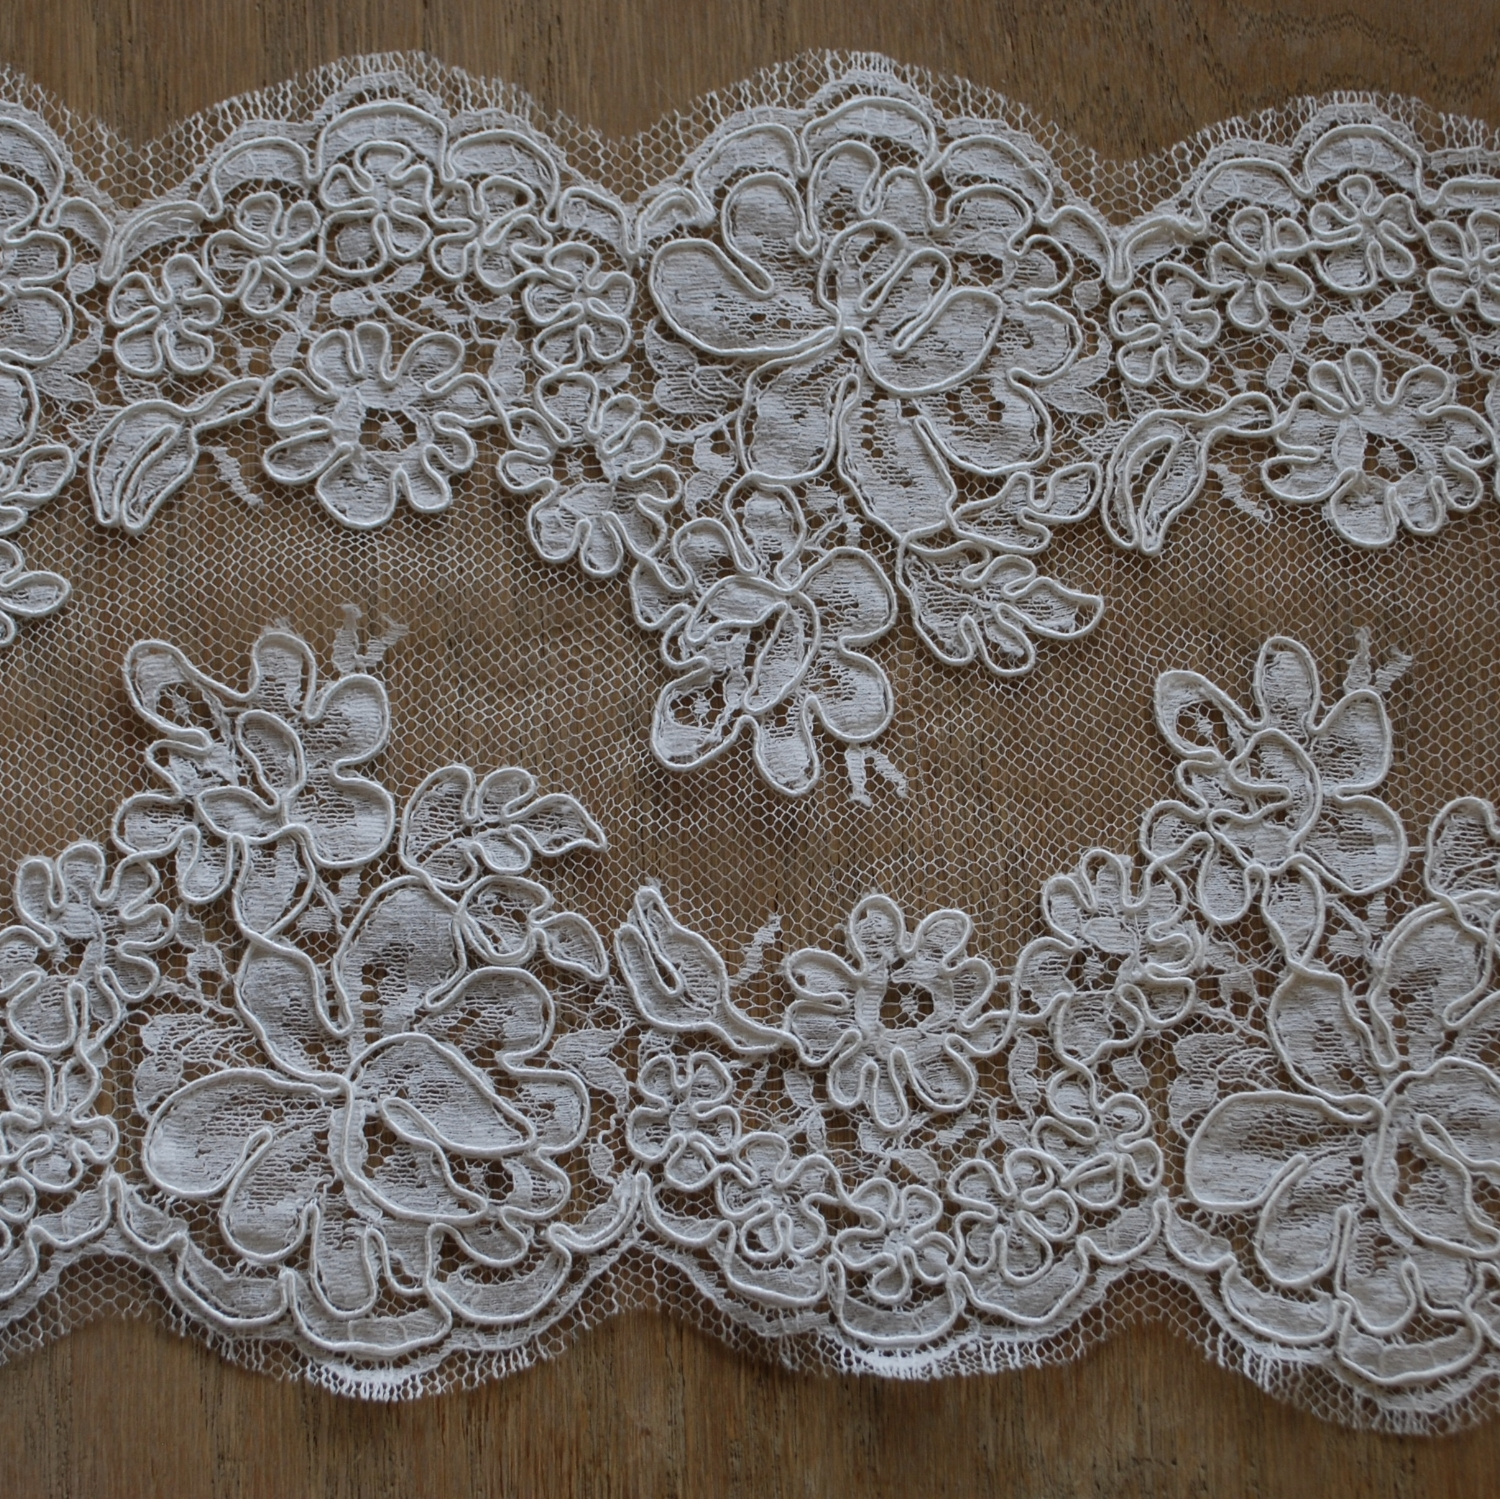 Alençon lace is a corded lace made on a sheer netting. It is pronounced (a-lonh-sohn).